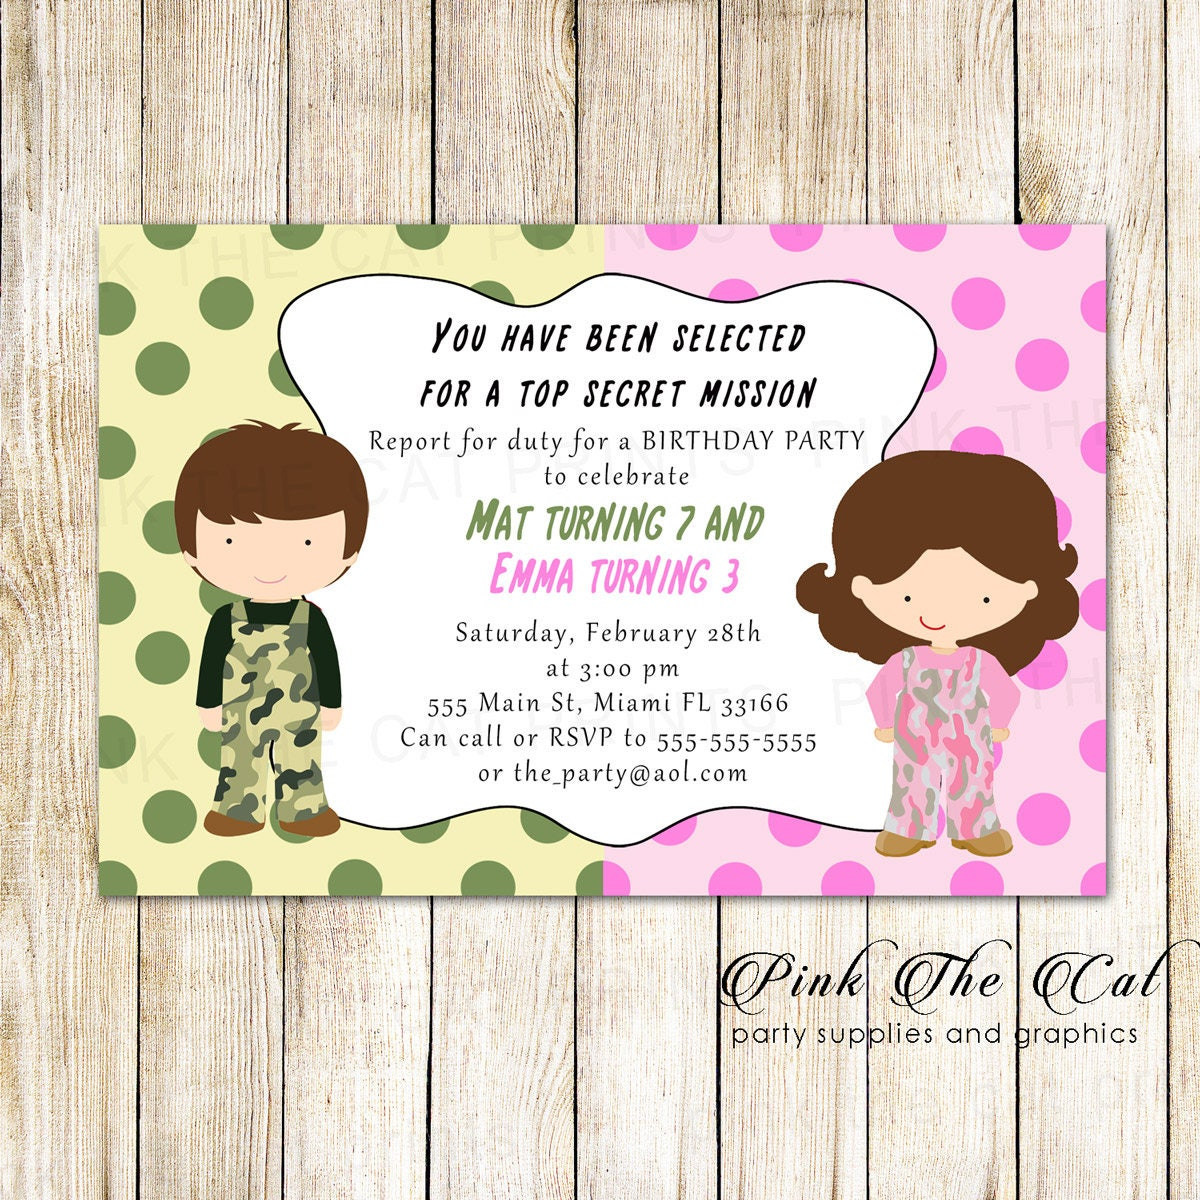 Twins invitation twins girl boy invitation brother sister zoom kristyandbryce Gallery